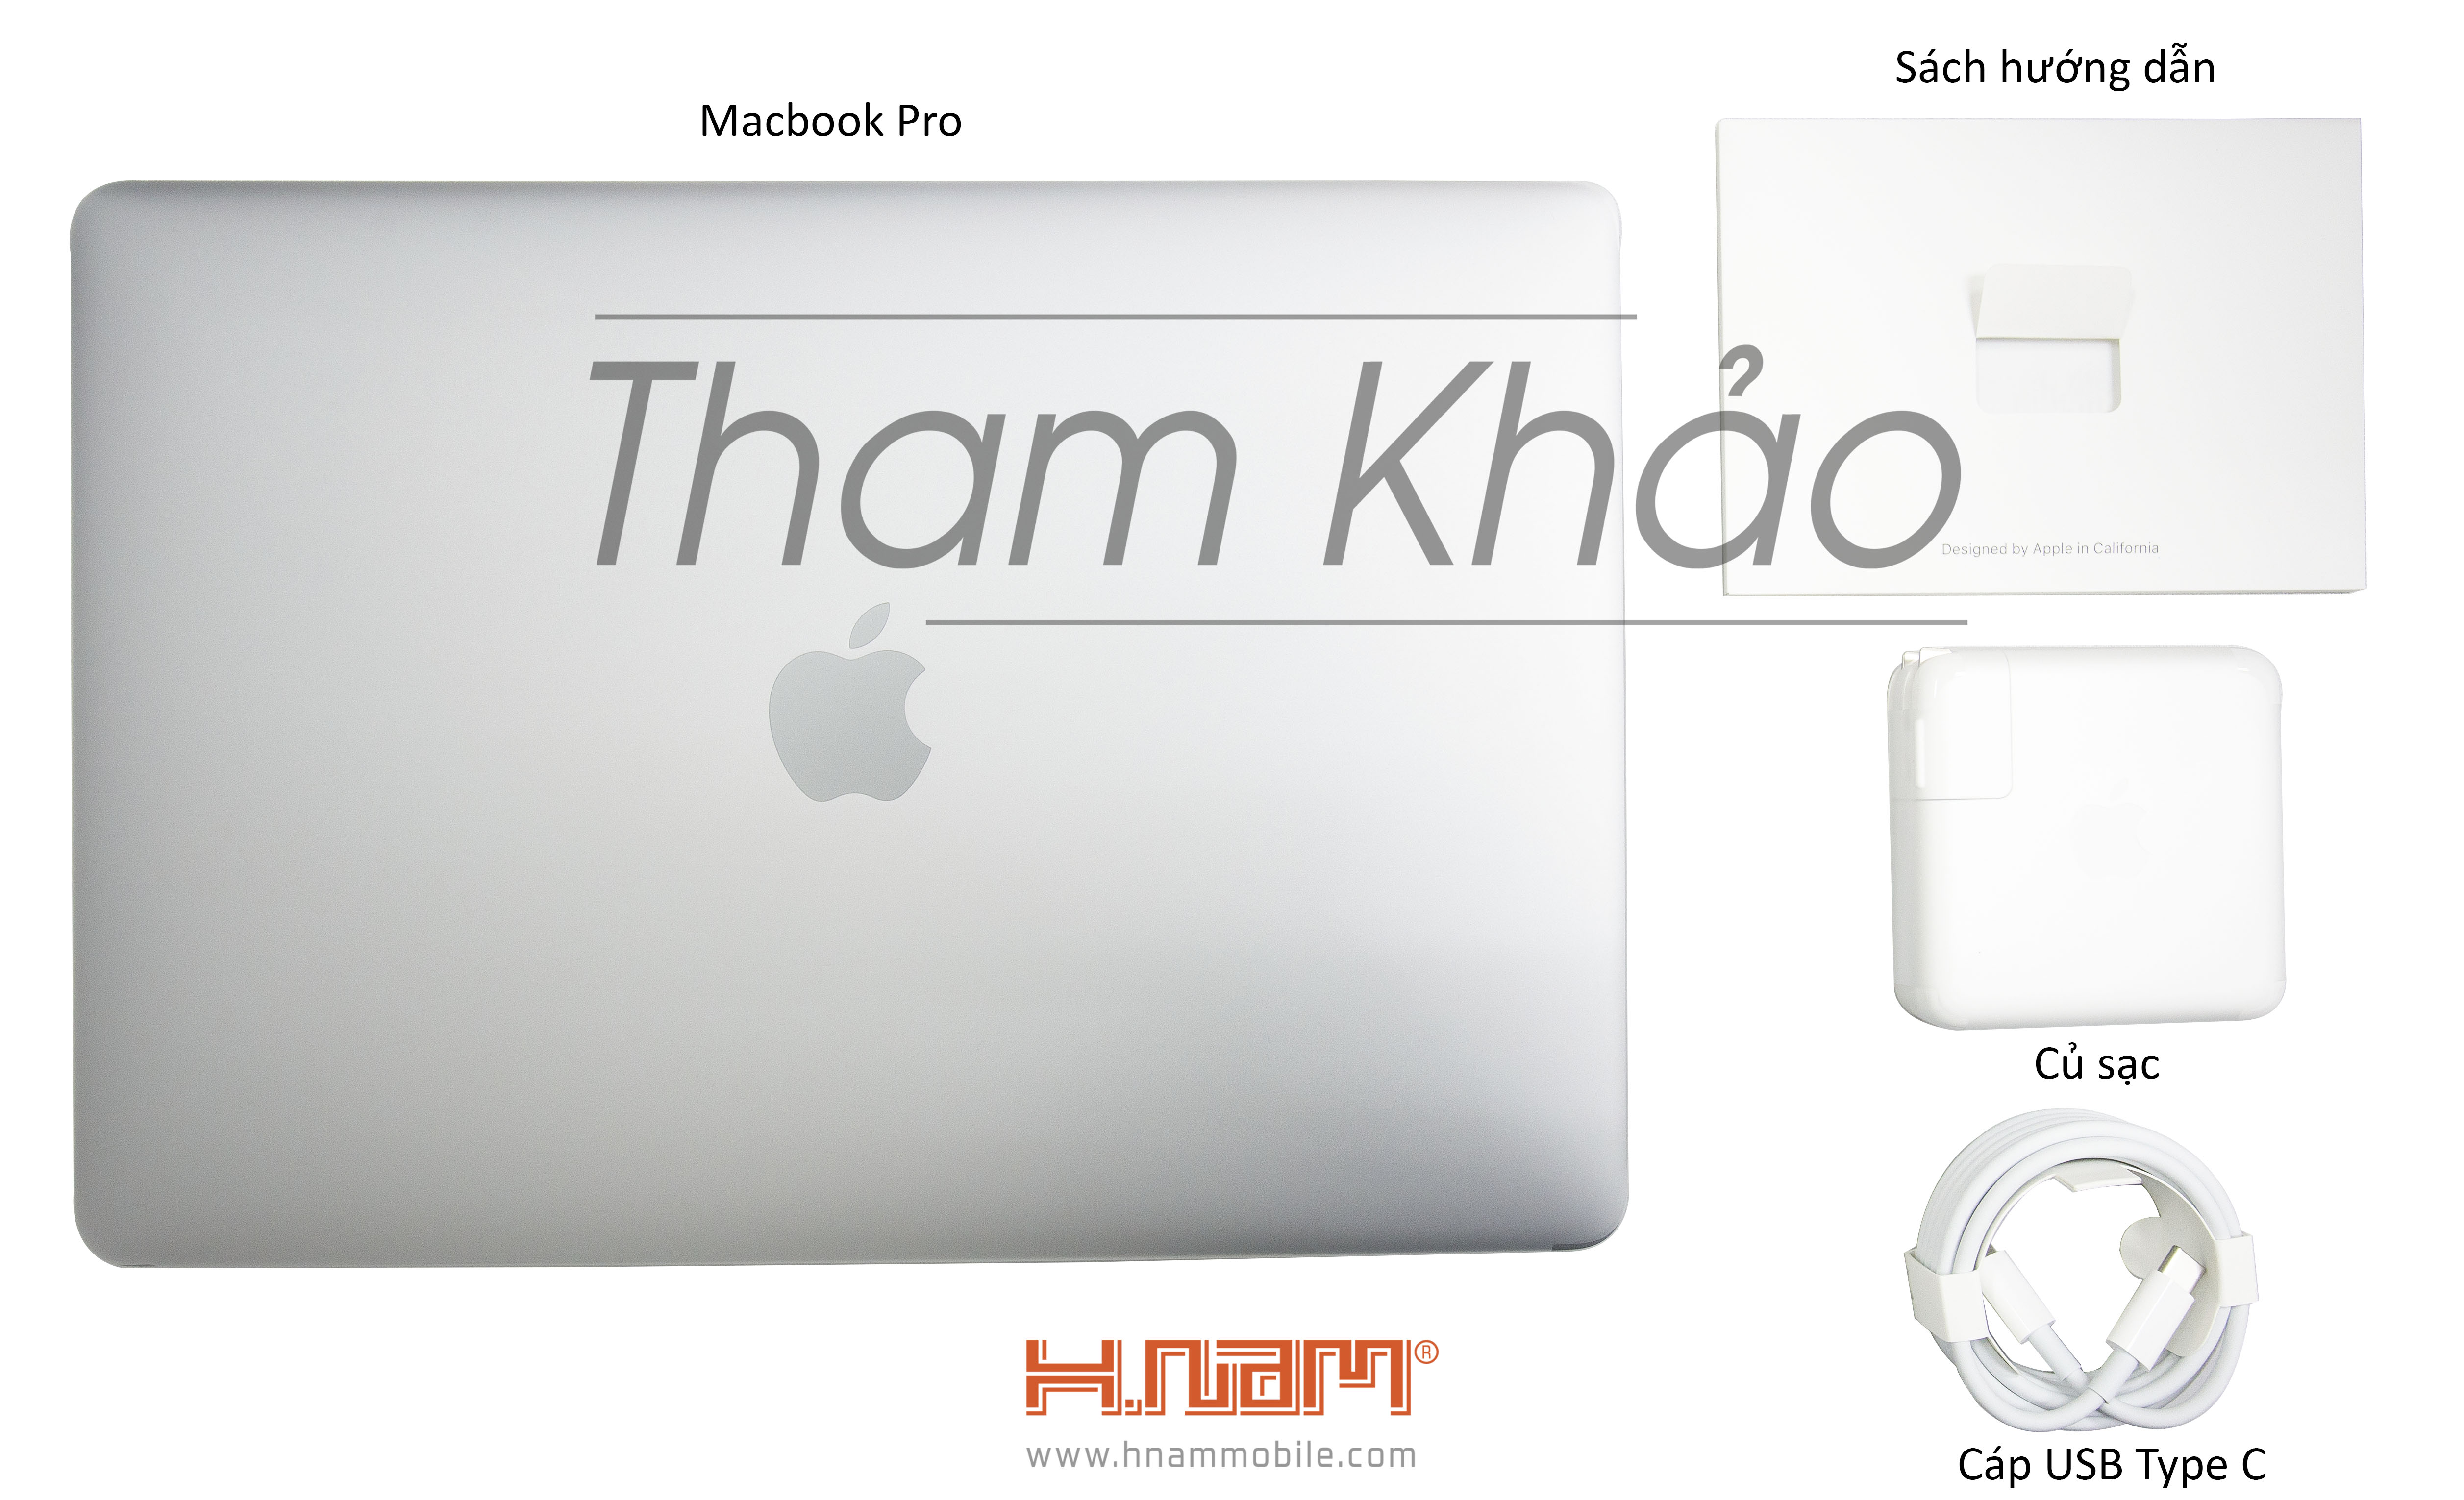 MacBook Pro 13 inch Touch Bar 2019 MUHN2 128GB Gray CPO (Certified Pre-Owned) hình sản phẩm 0